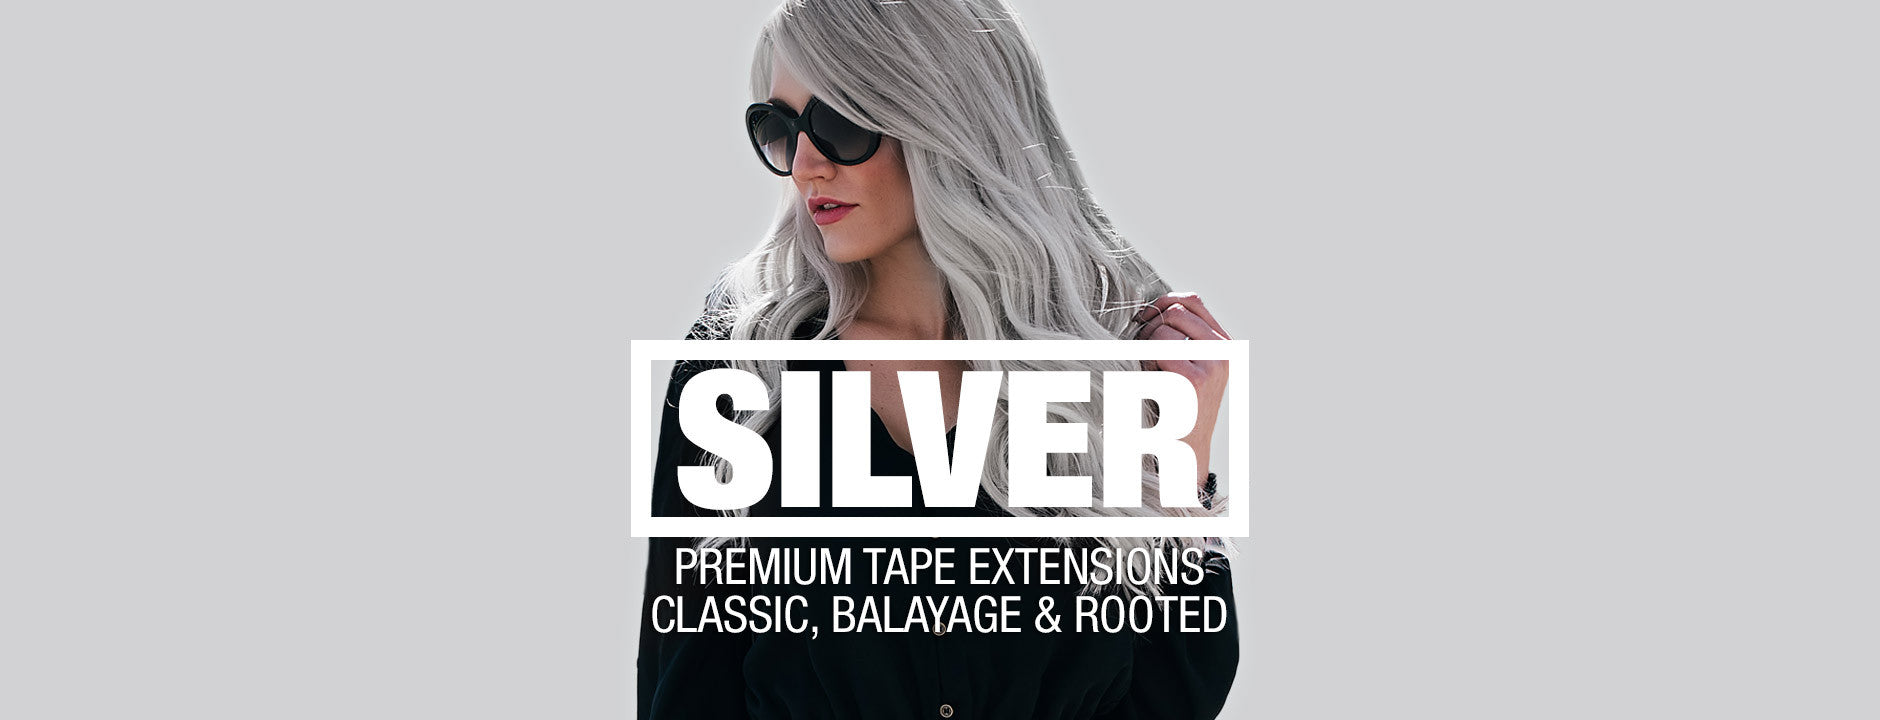 Silver hair extensions